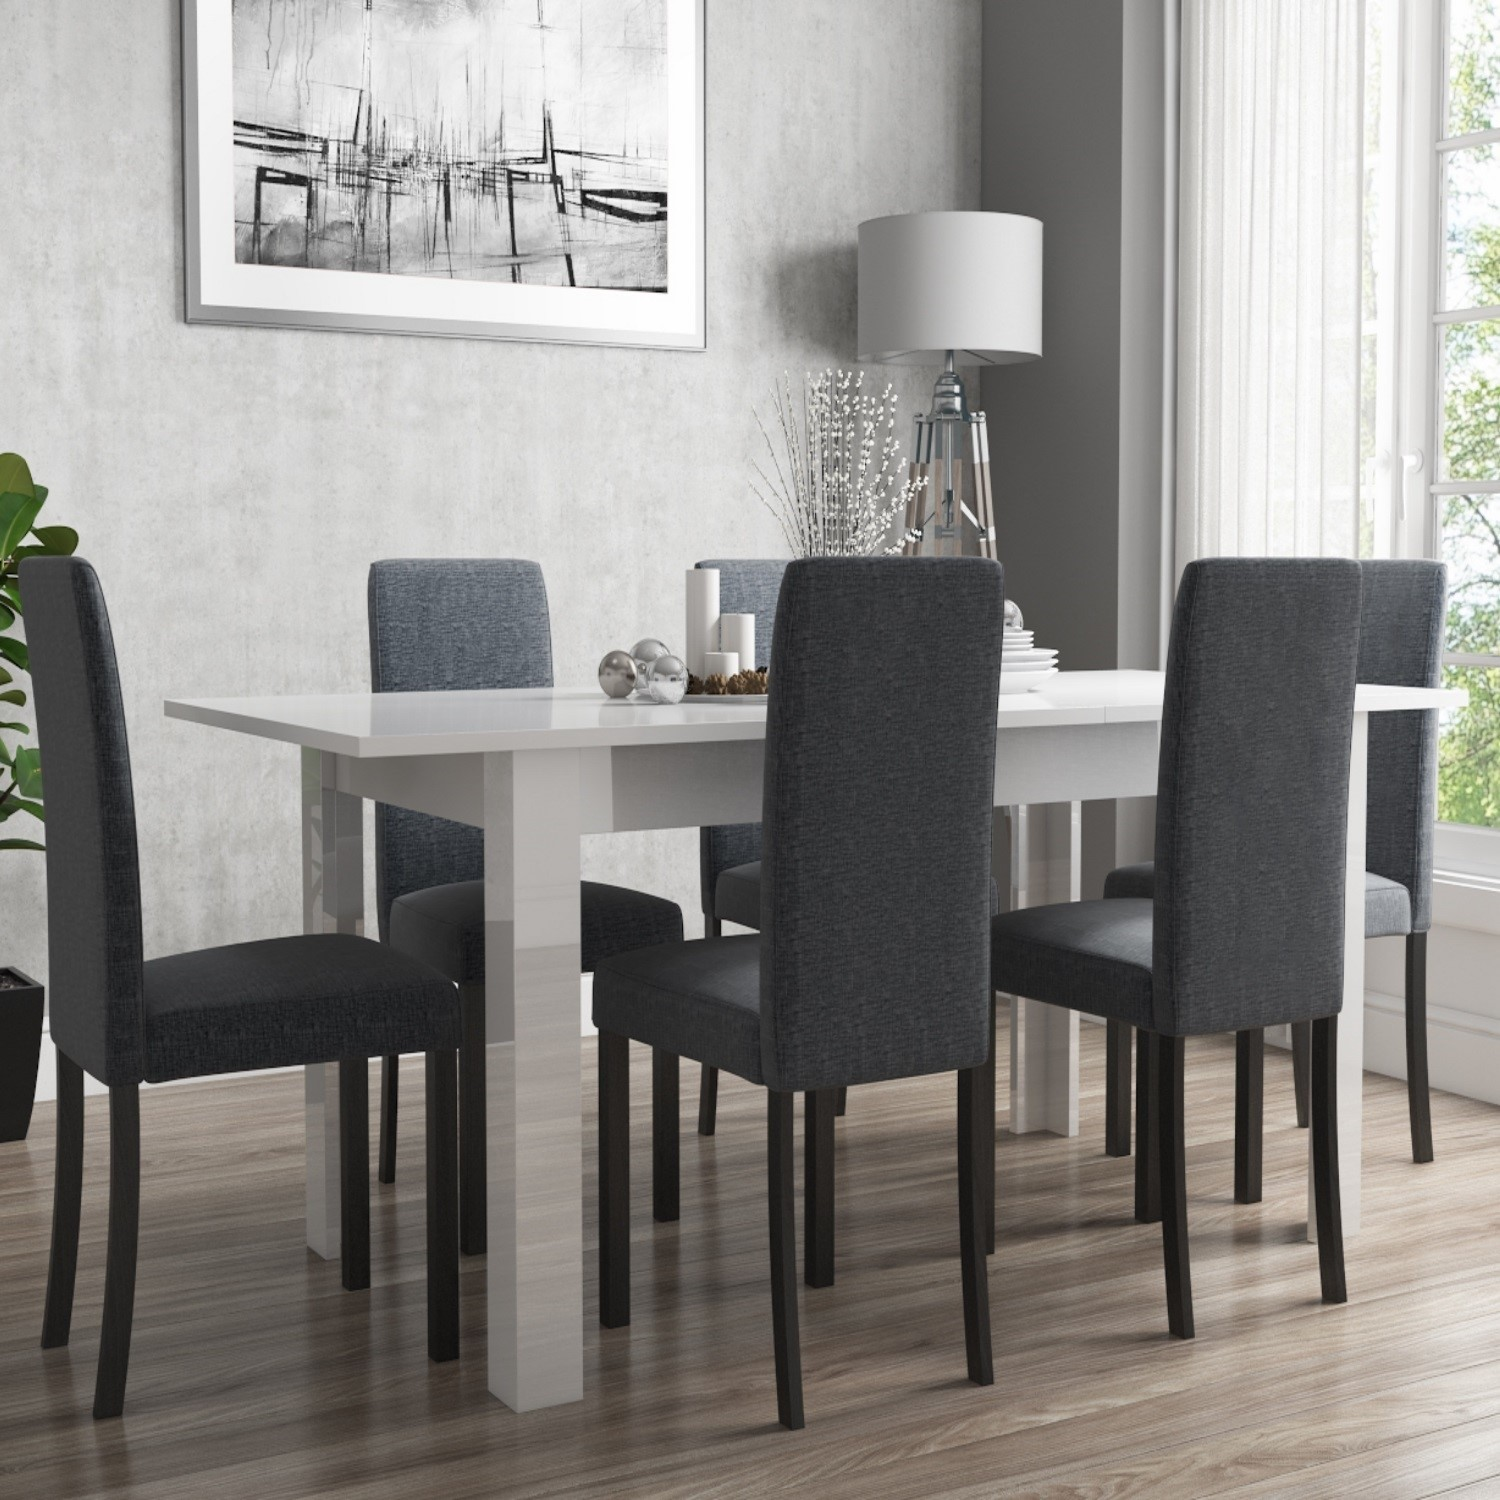 Picture of: Extendable Dining Table In White High Gloss With 6 Grey Chairs Black Legs Vivienne New Haven Furniture123